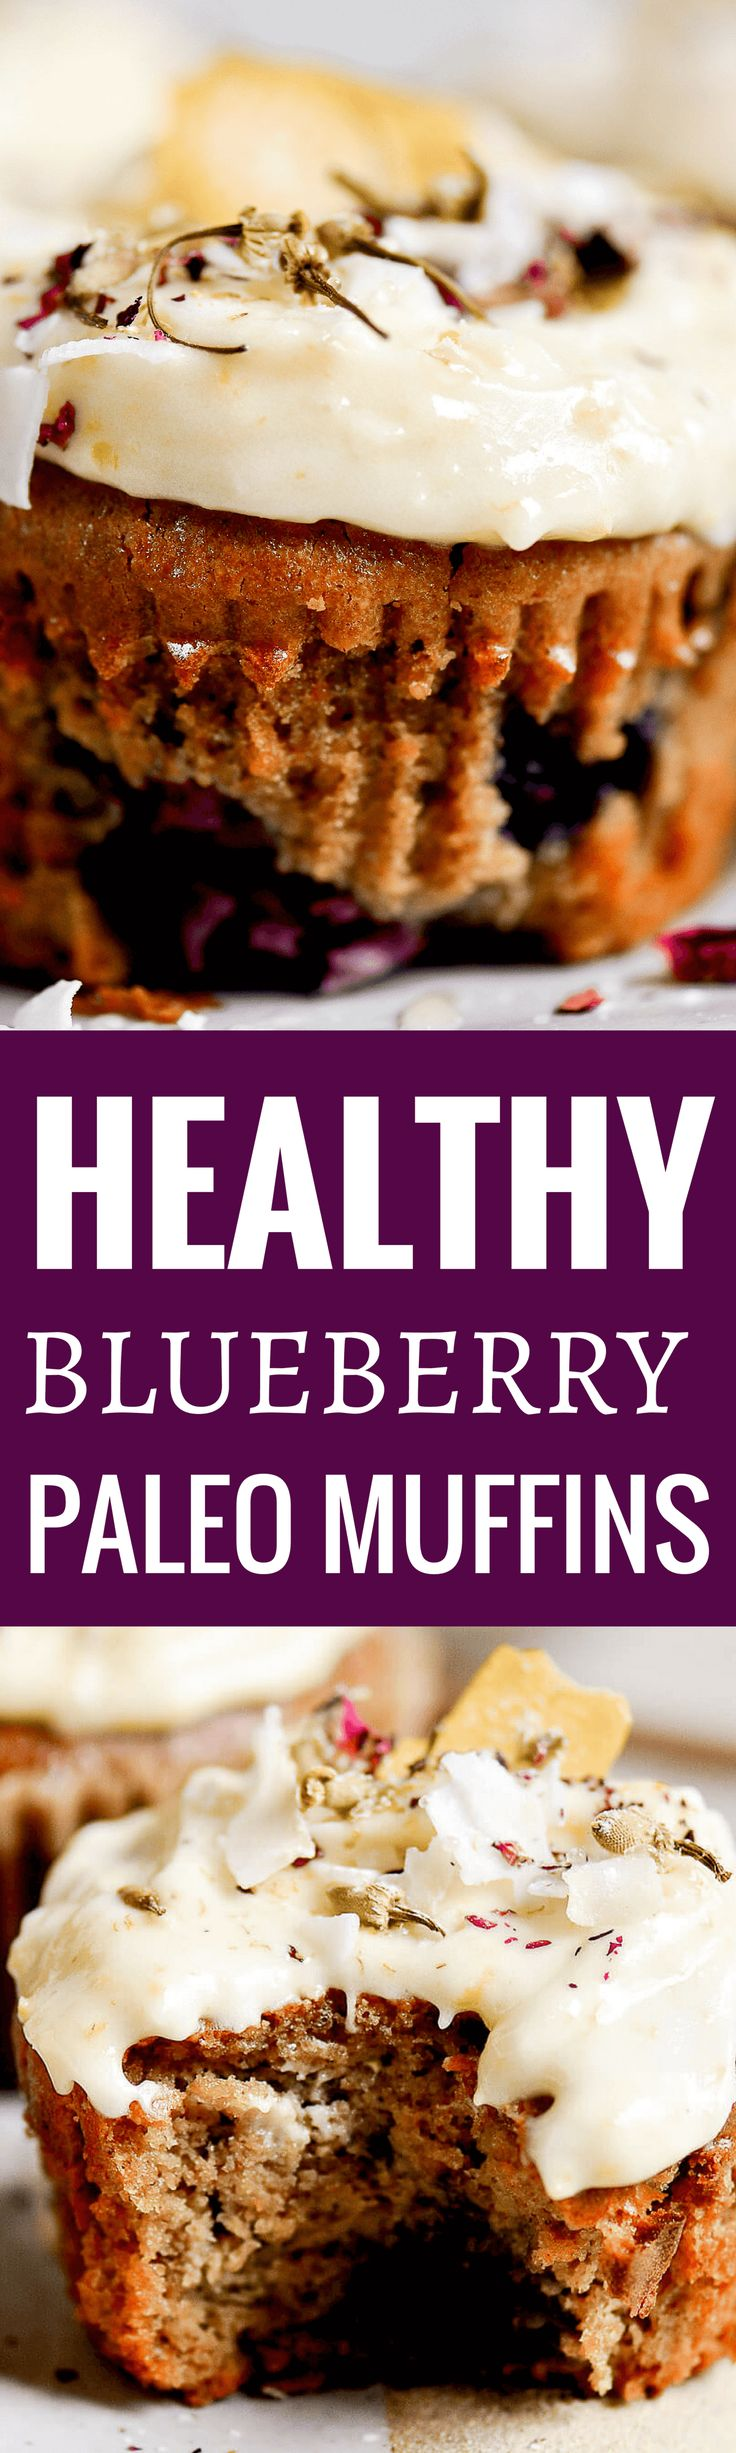 The lightest, most fluffy paleo blueberry muffins! Made with cashew butter and topped with a lushes vegan whipped lemon frosting. Naturally flourless, gluten free, dairy free, and dang delicious! All clean eating ingredients are used for this healthy muffin recipe. Pin now to make during meal prep or for a healthy breakfast.